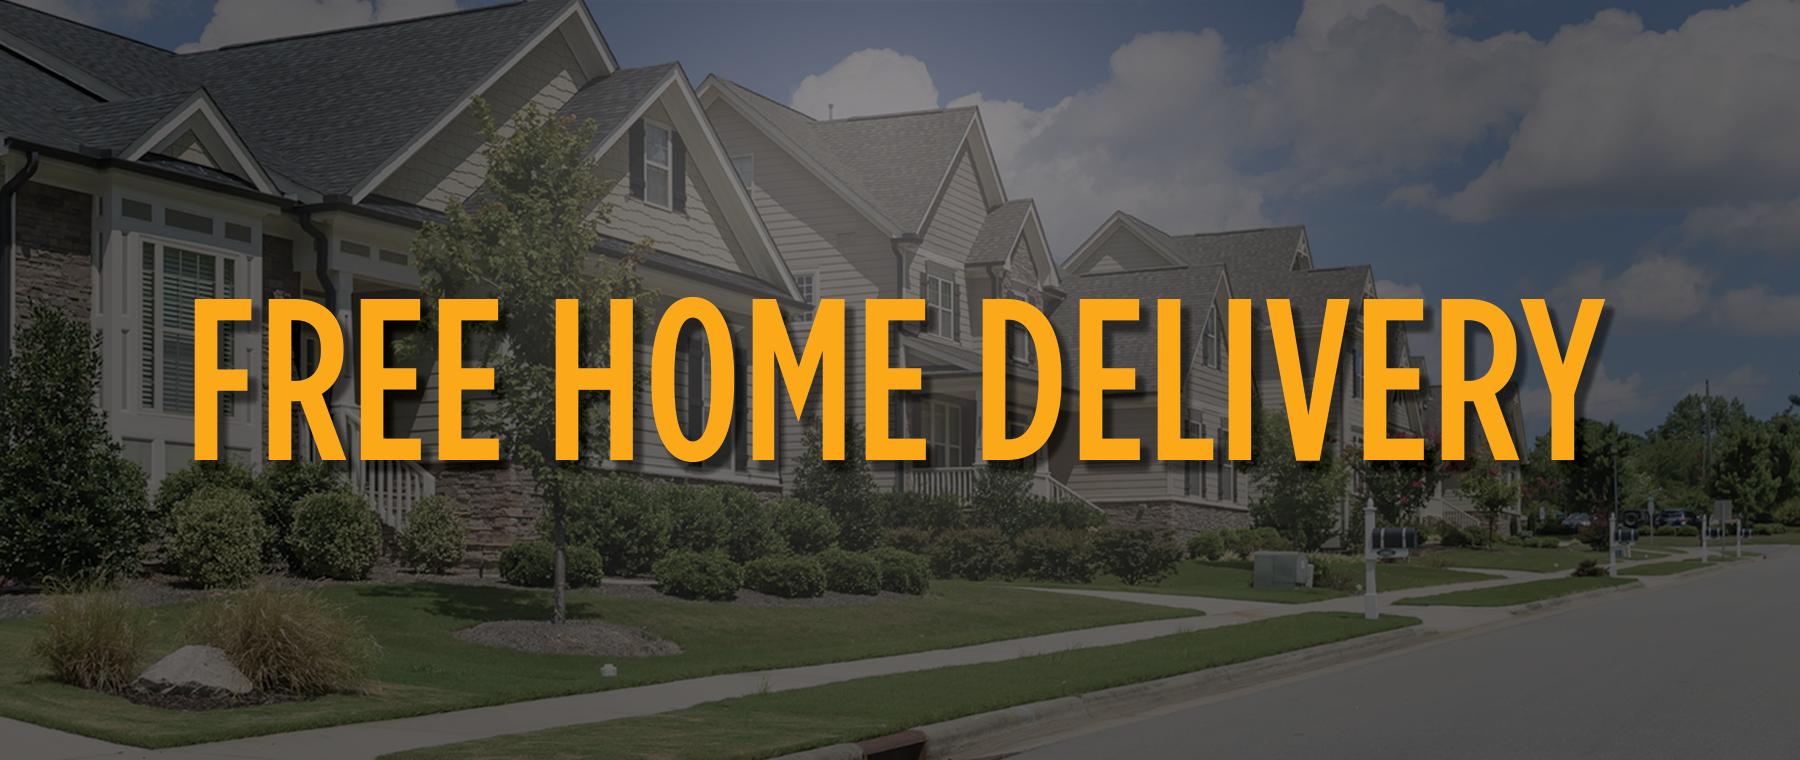 FREE HOME DELIVERY 2